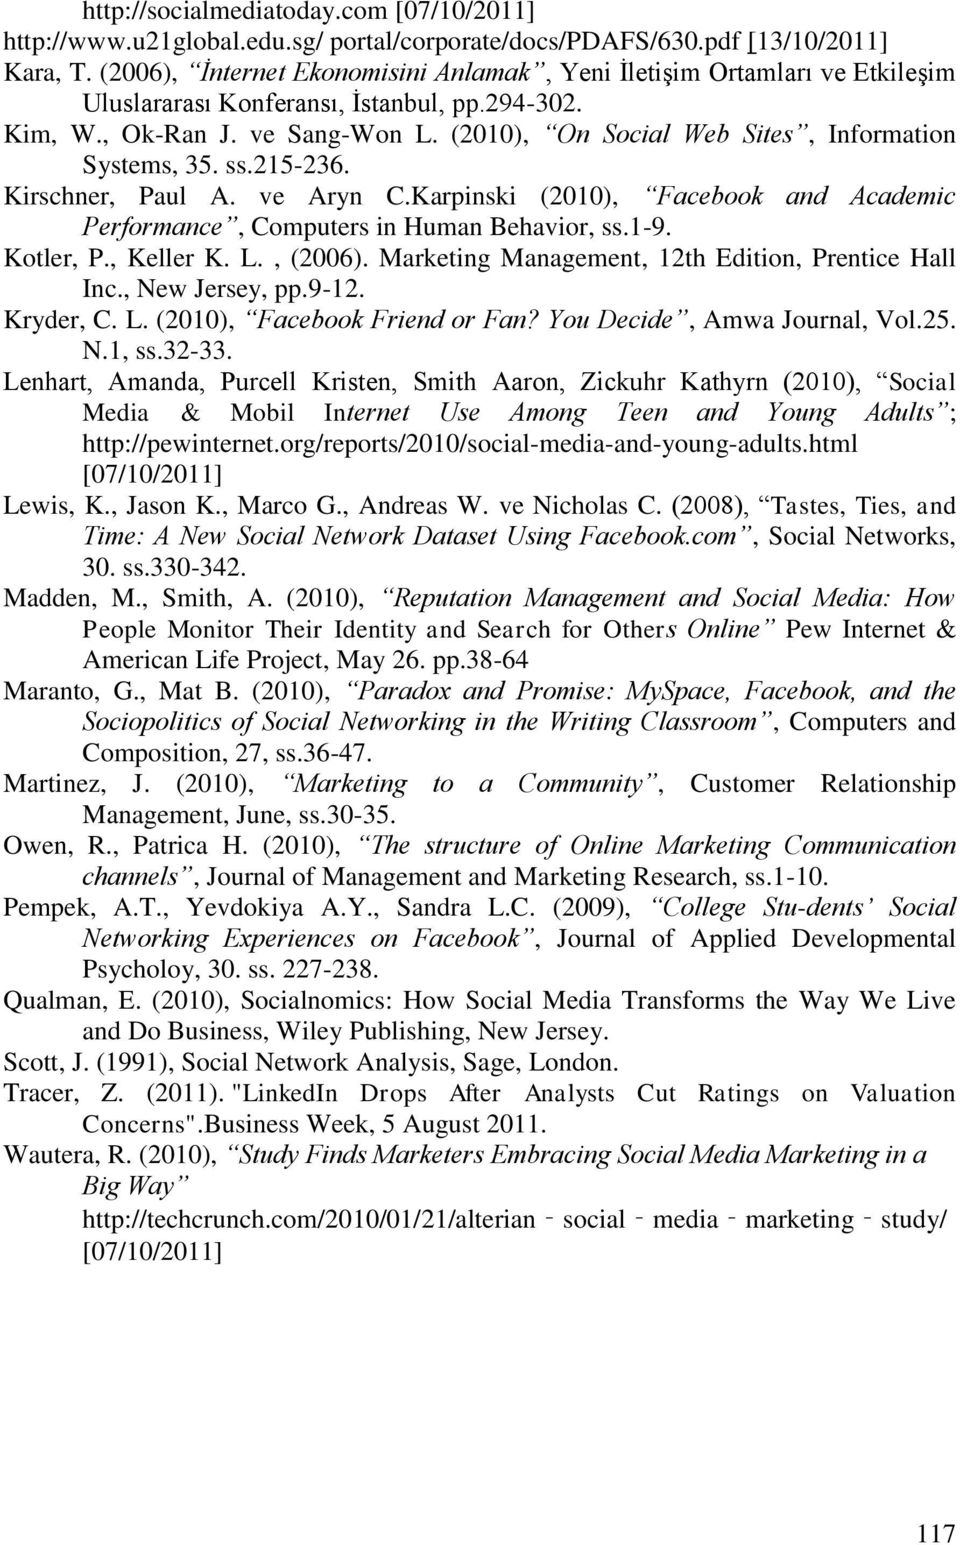 (2010), On Social Web Sites, Information Systems, 35. ss.215-236. Kirschner, Paul A. ve Aryn C.Karpinski (2010), Facebook and Academic Performance, Computers in Human Behavior, ss.1-9. Kotler, P.